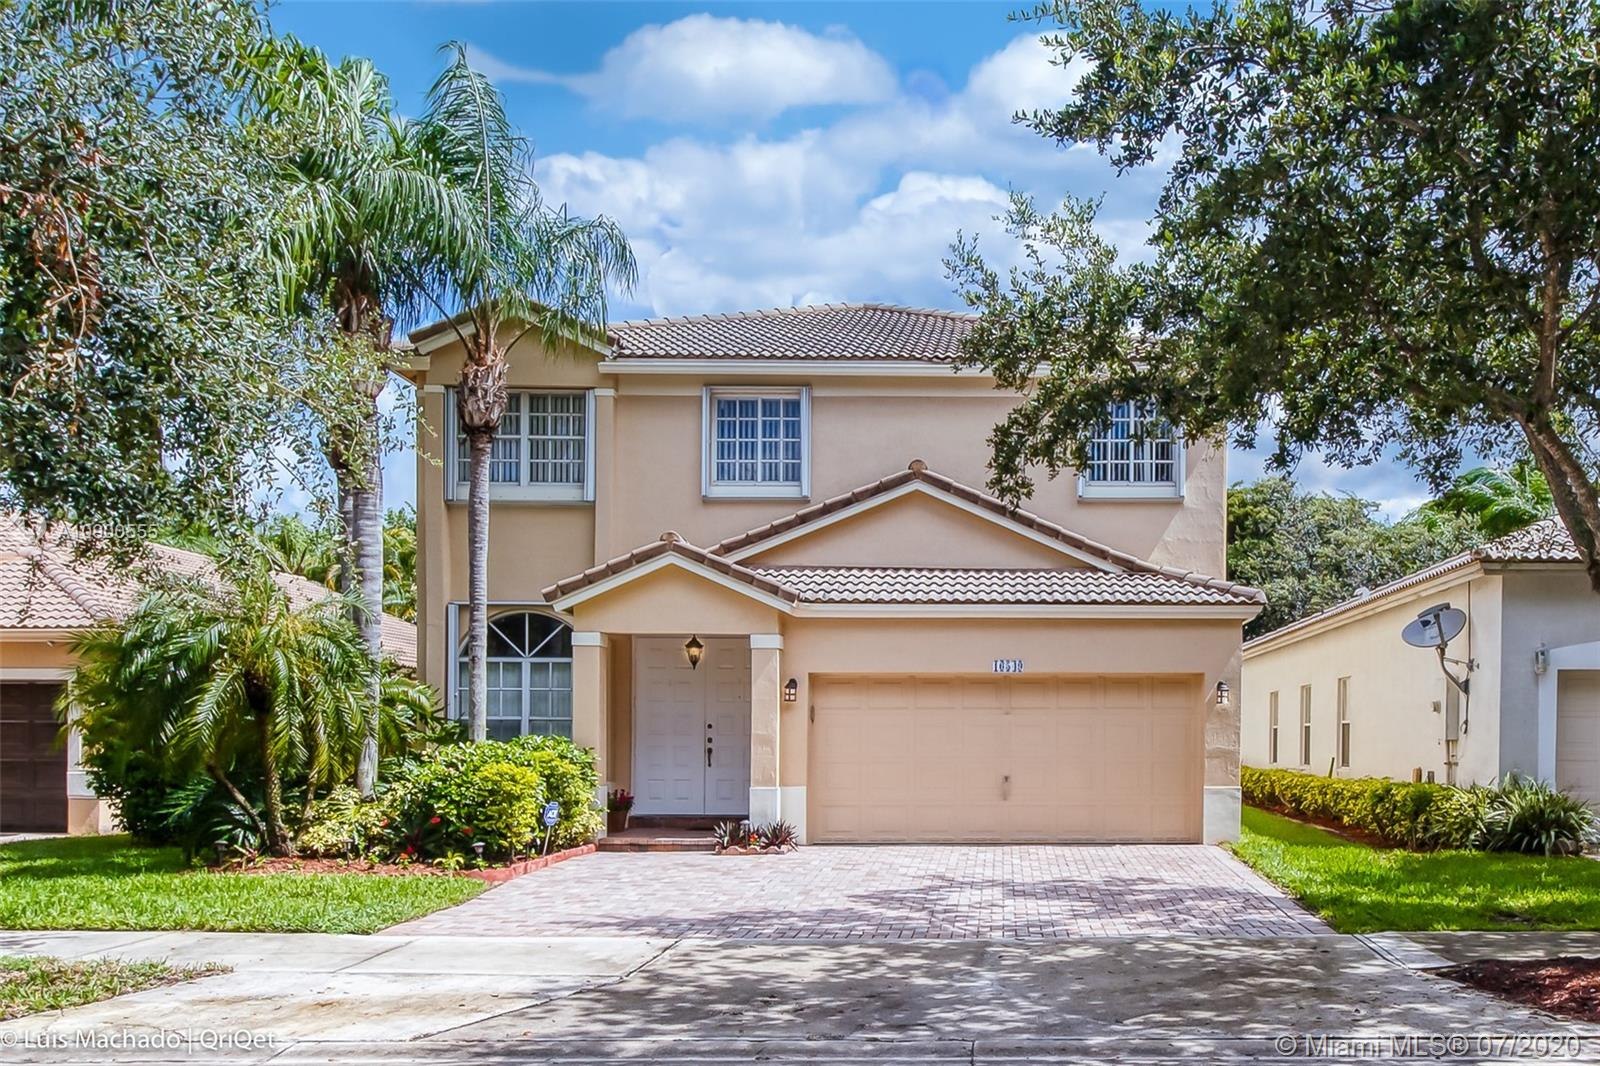 MOVE IN READY & PRICED TO SELL! BEAUTIFUL,COMPLETELY REMODELED & EXPANDED HOME located in exclusive,GUARD GATED Emerald Estates at Weston! 4 Bedroom,4.5 Bath home,w/a flex room that can be used as 5th bedroom.3,381 SF under air & OVER $200K IN UPGRADES.Spacious formal living/dining rooms,updated kitchen w/hardwood cabinets,granite counters & S.S.appliances that joins another casual dining & family room overlooking the pool.20x20 porcelain tiles downstairs,Brazilian cherry wood upstairs.OVERSIZED M.Bedroom has sitting area and office.Huge patio w/ceiling fans,saltwater pool,water feature & travertine deck.Summer kitchen has a full cooking features,full sink & cabinets.This home is great for entertaining! All A+schools & close to shopping,City Park & I-75 for easy commutes.All ONLY $183/SF.!